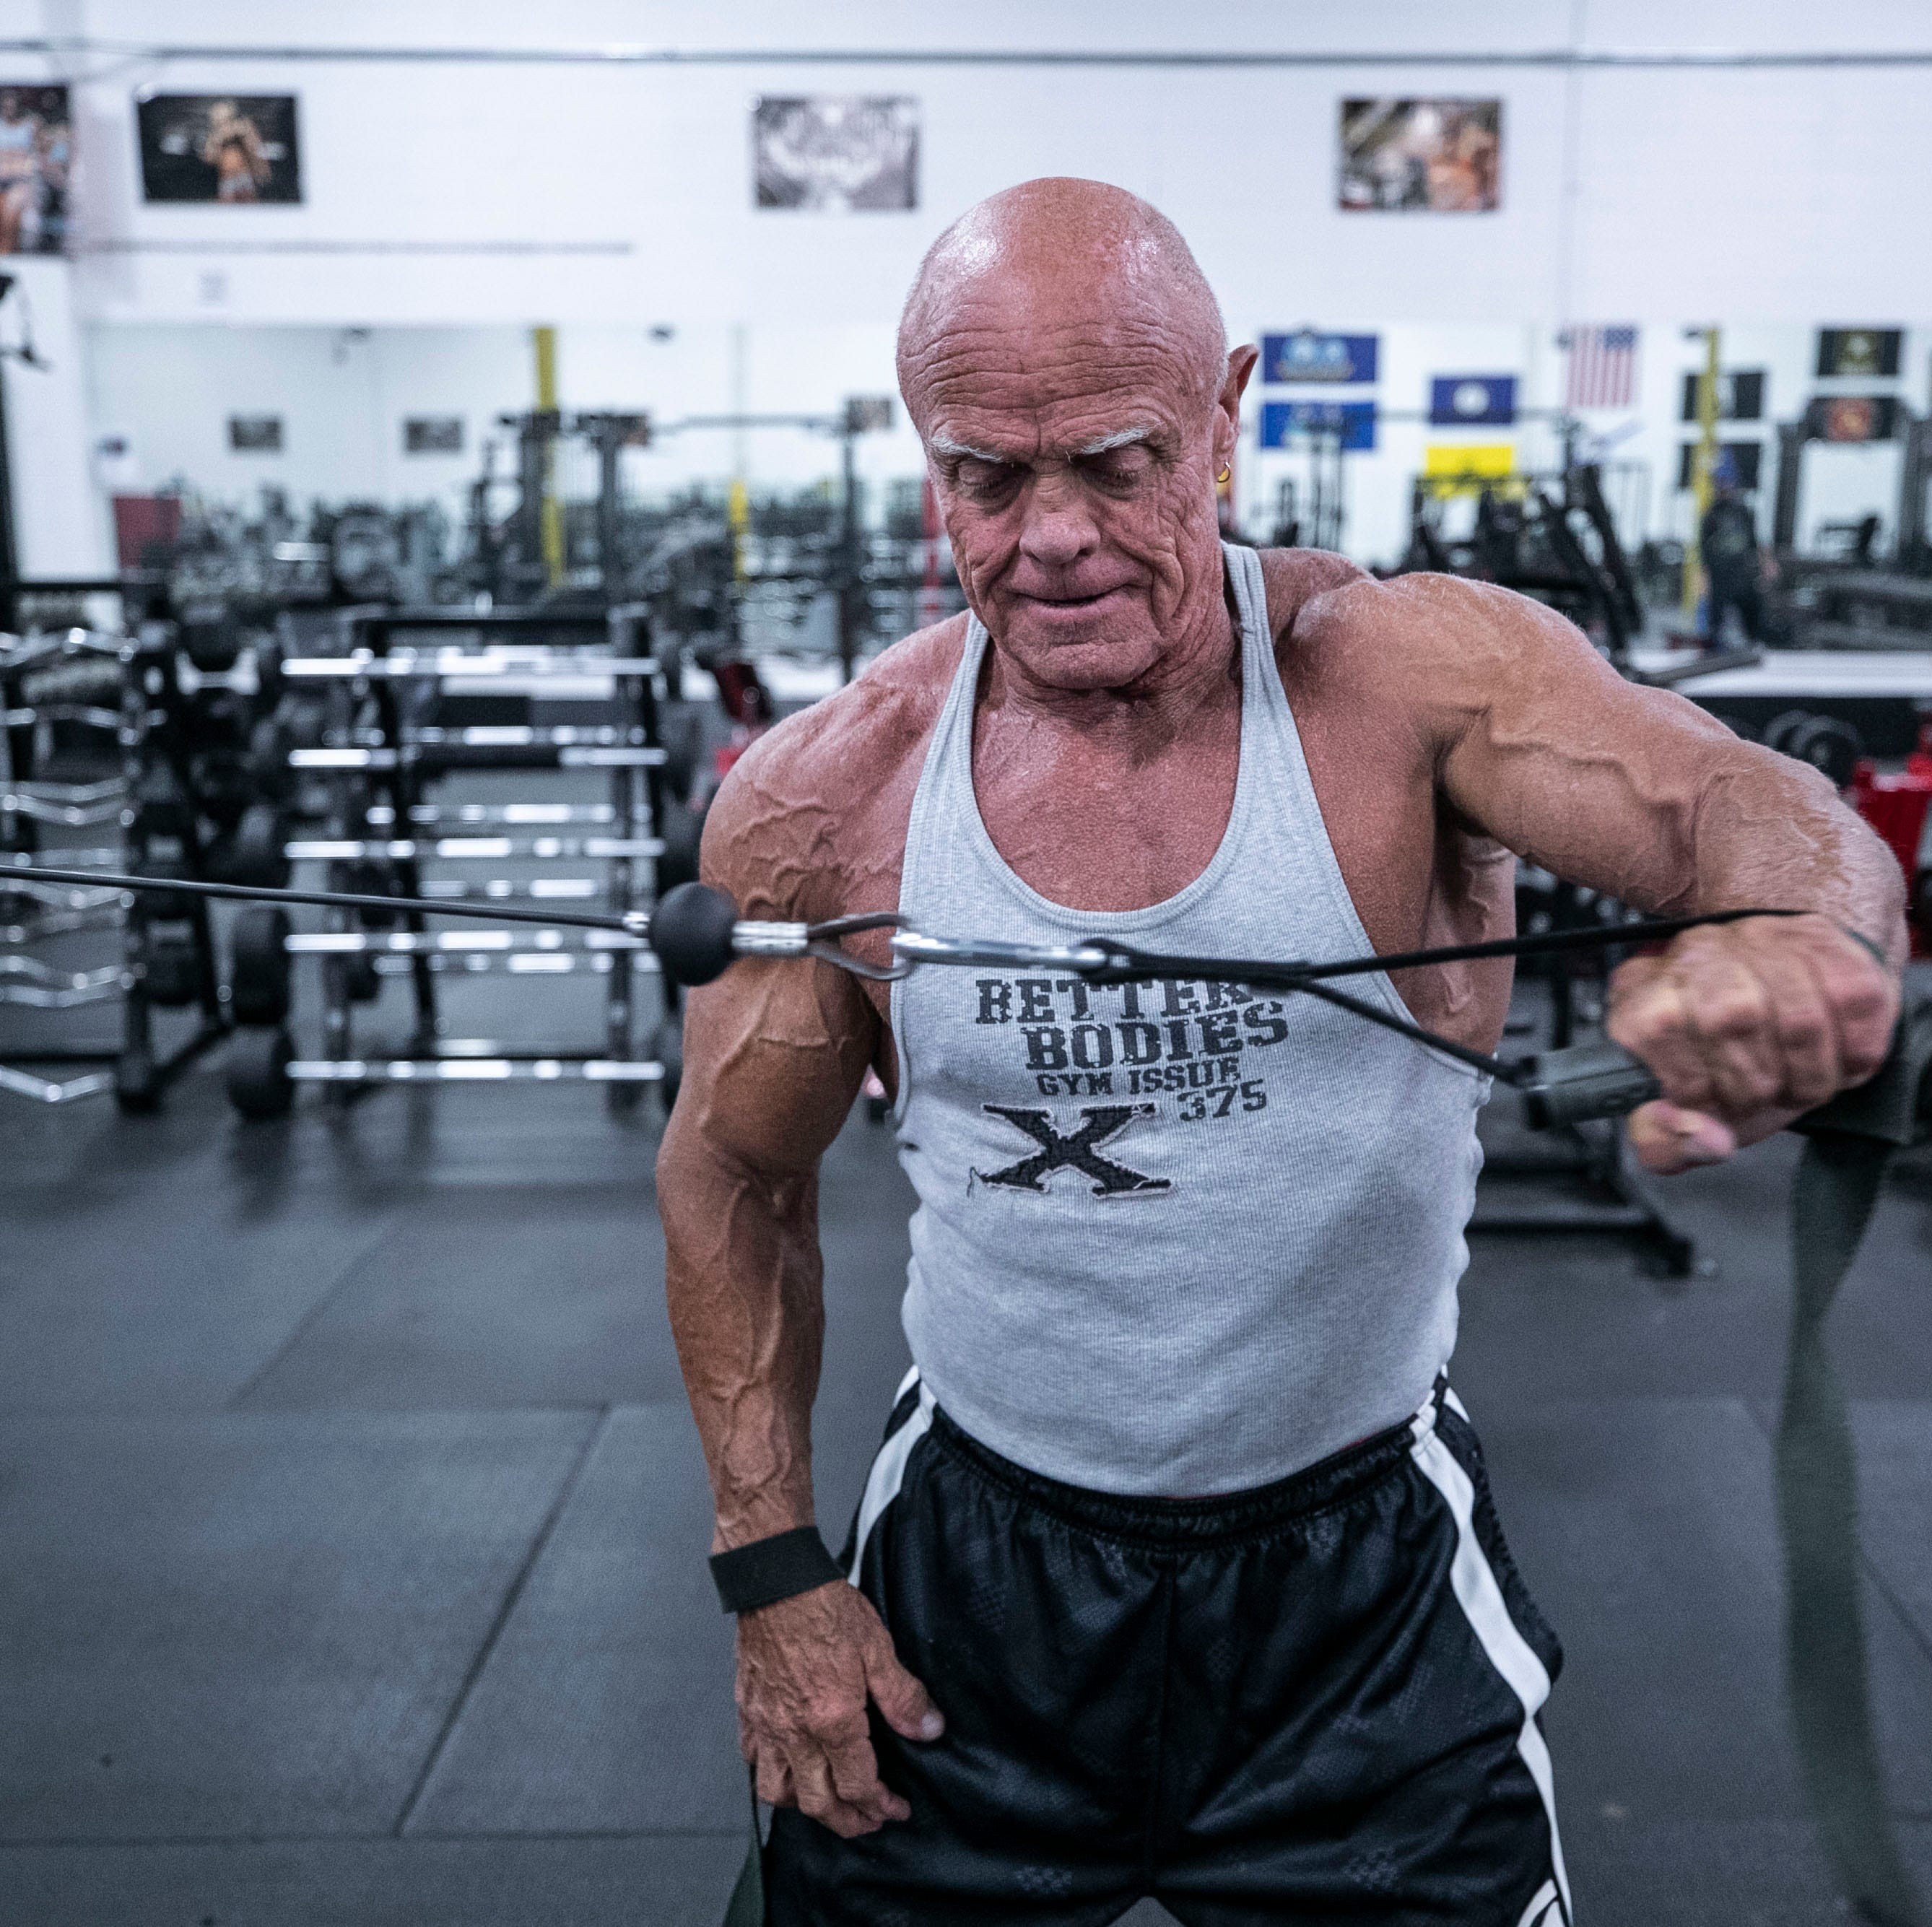 He's not 'a regular person.' Grandpa bodybuilder toned and tan at 65